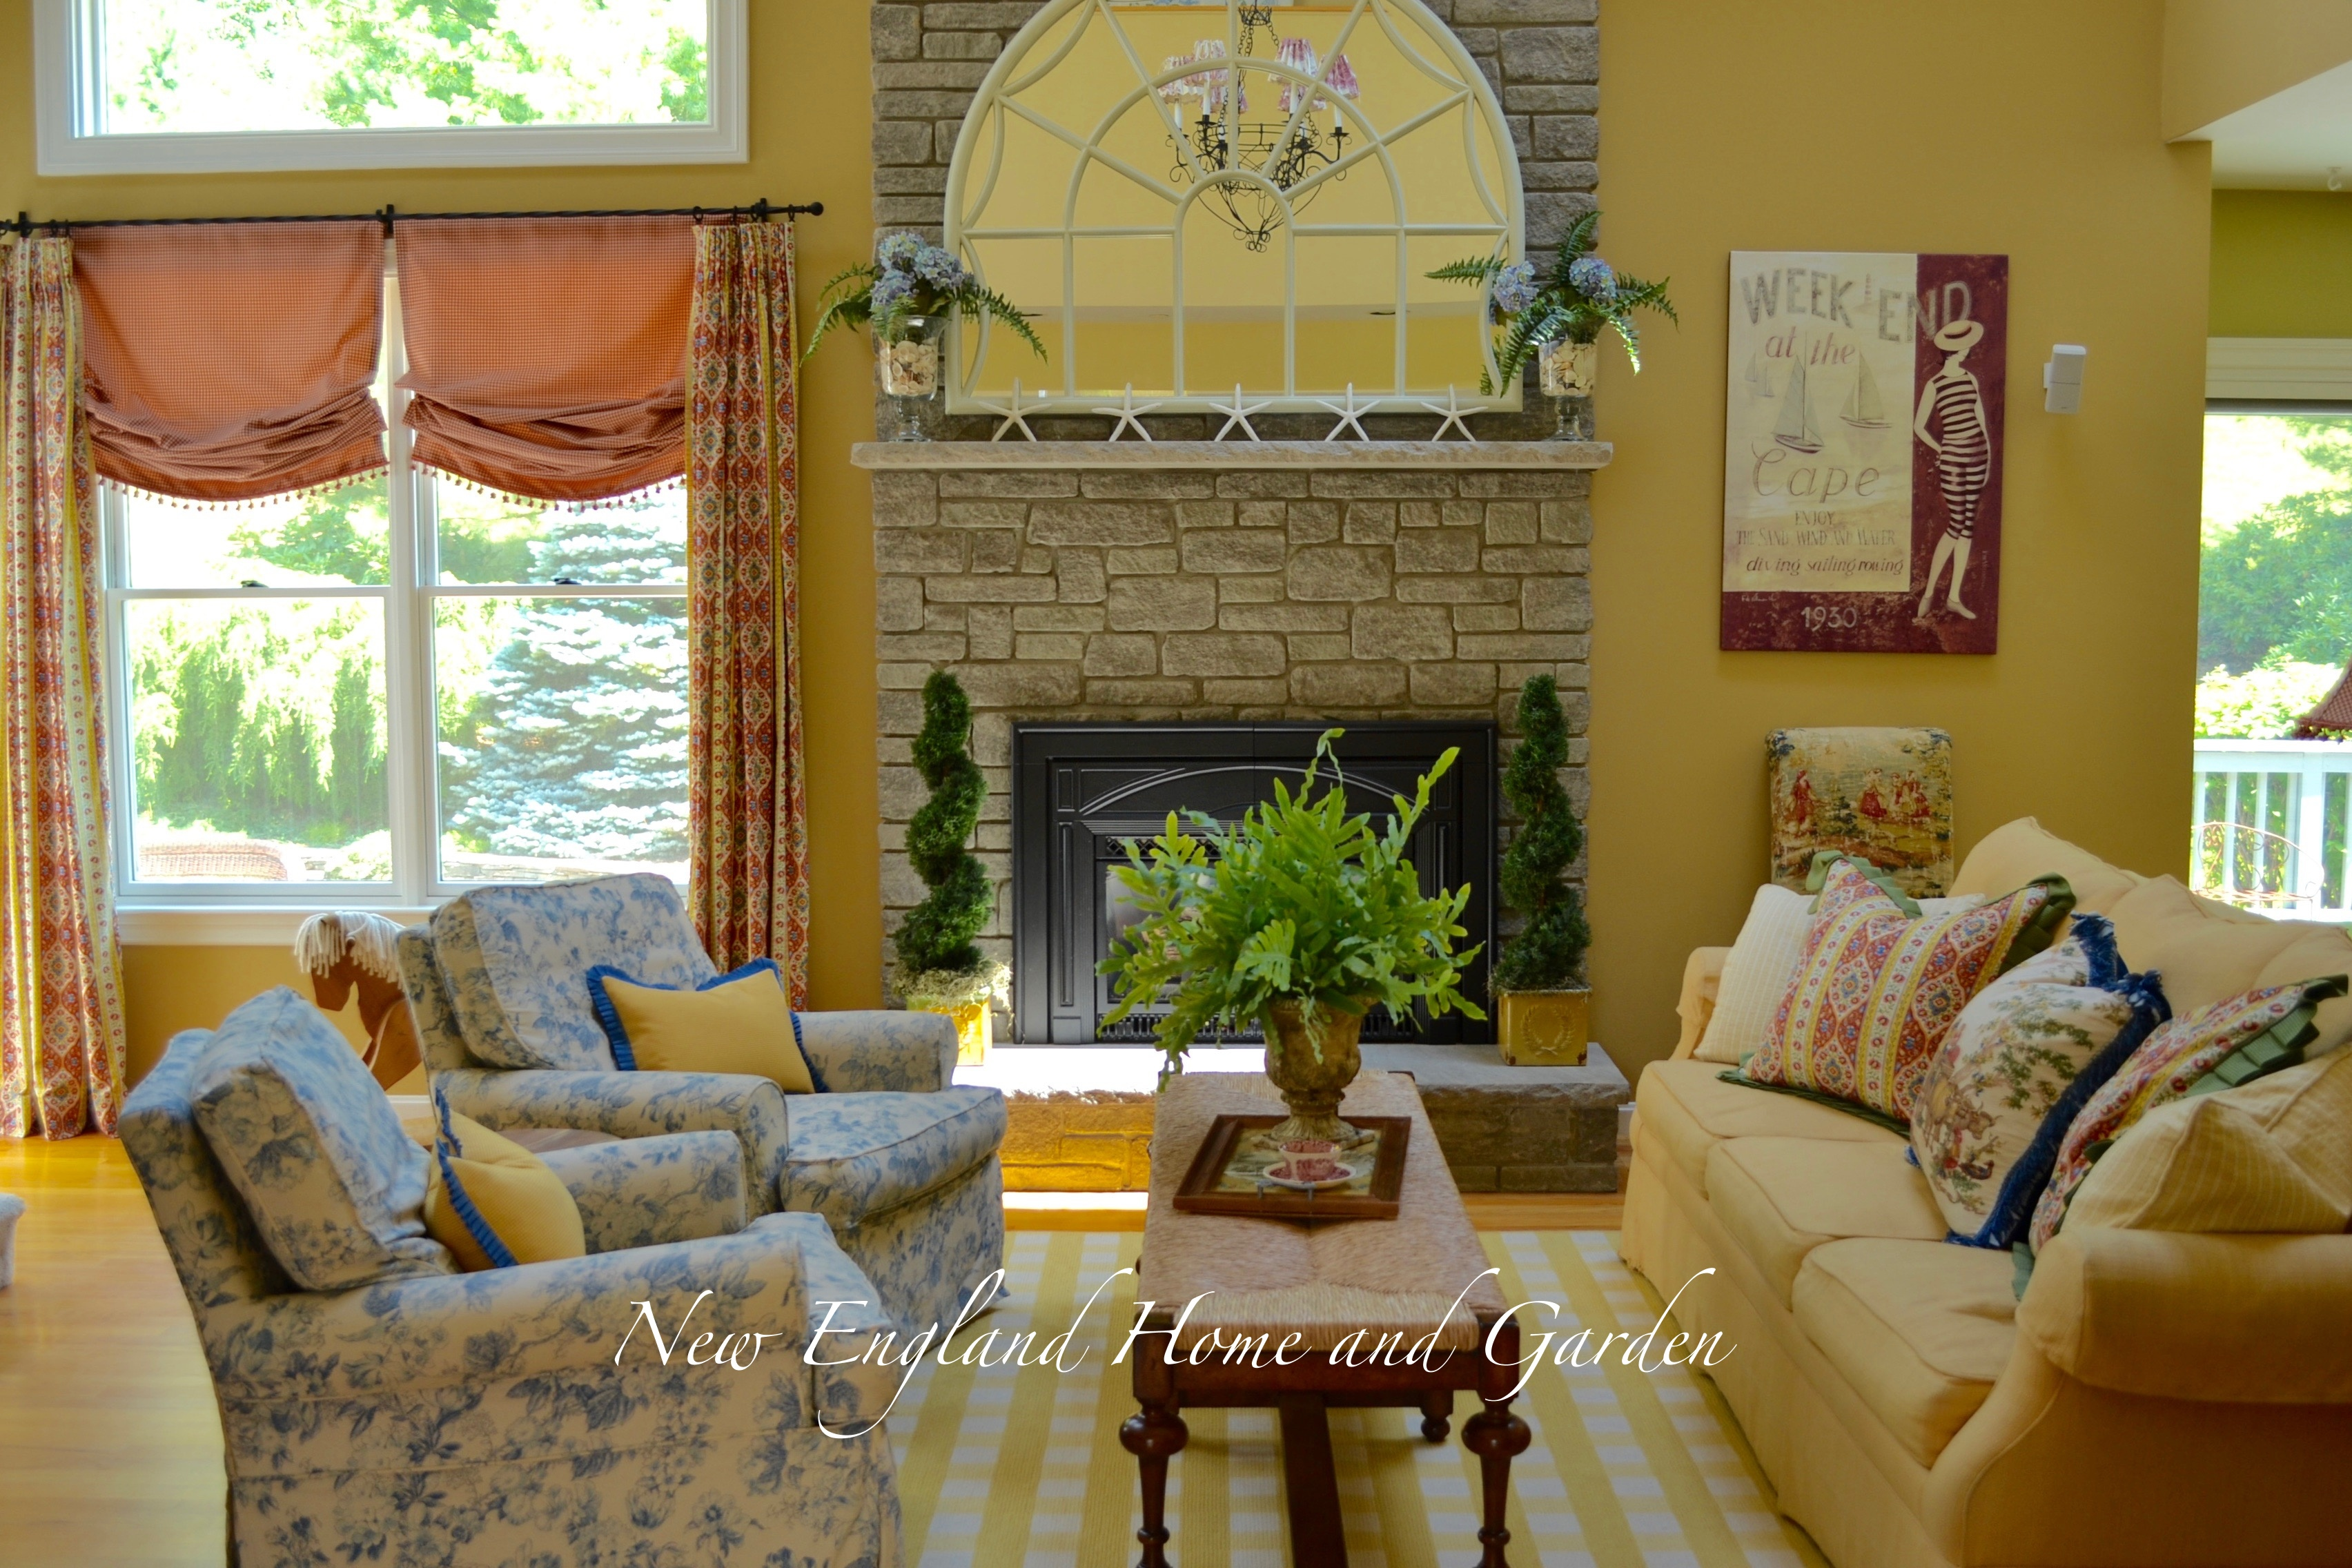 Summer Decorating: Fireplace Mantles | New England Home and Garden